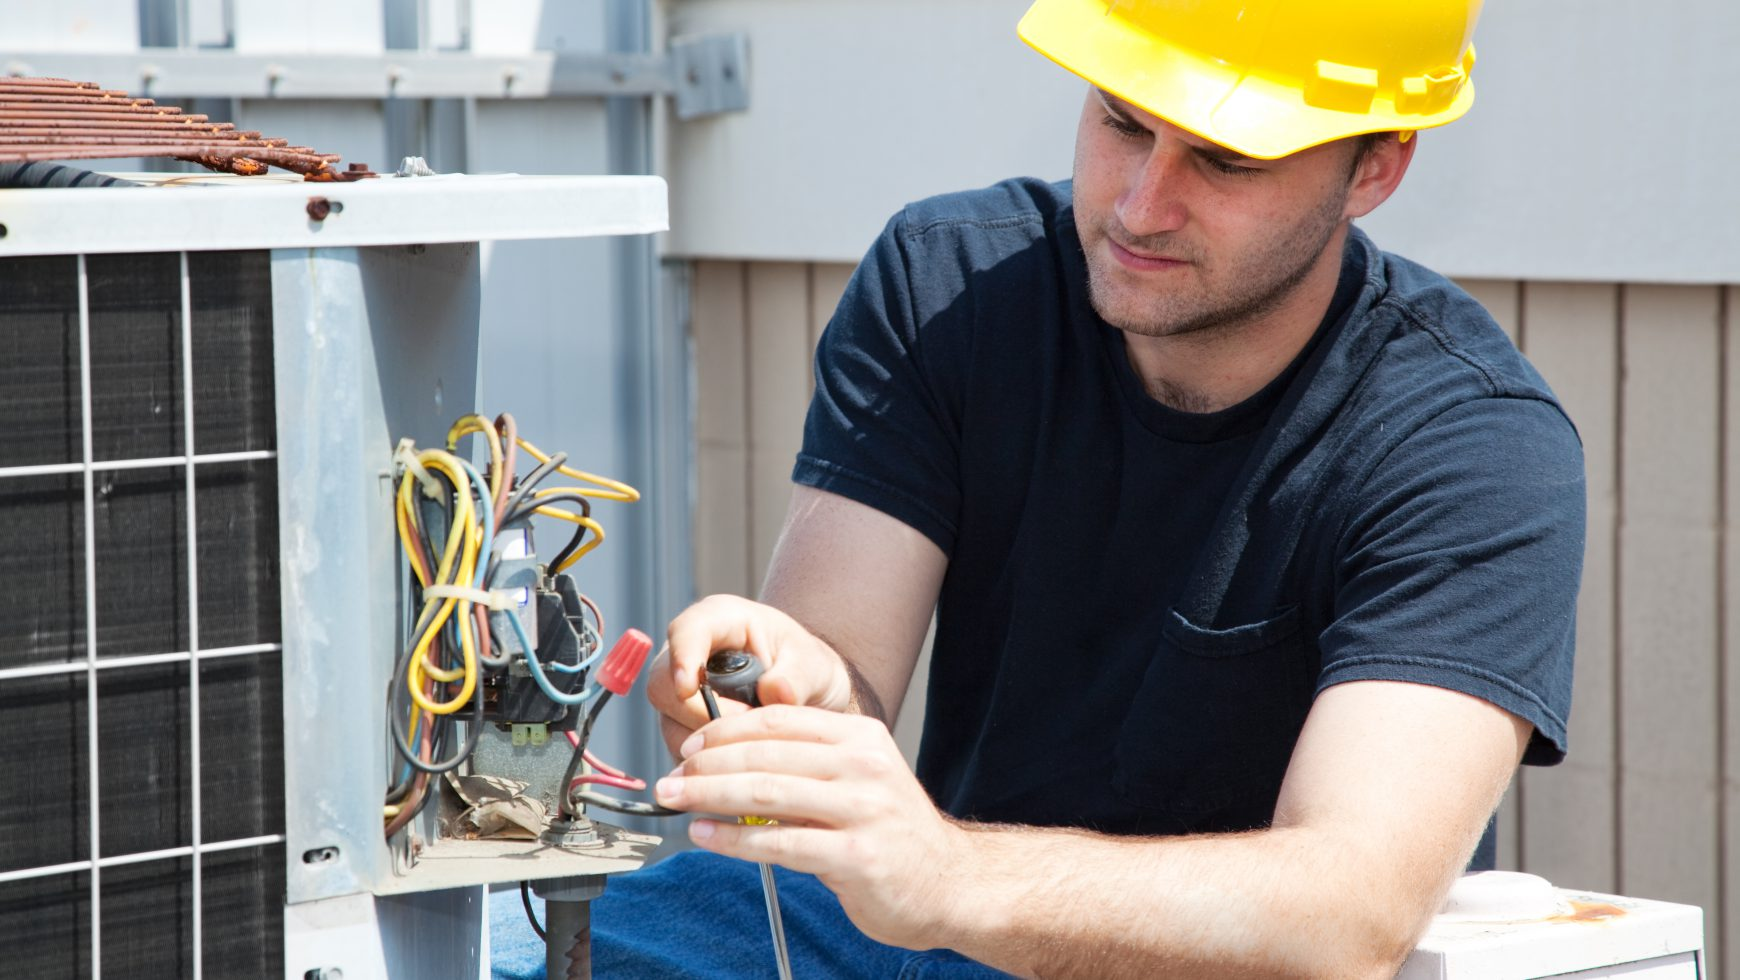 Veteran Job Spotlight of the Month: HVAC Technician